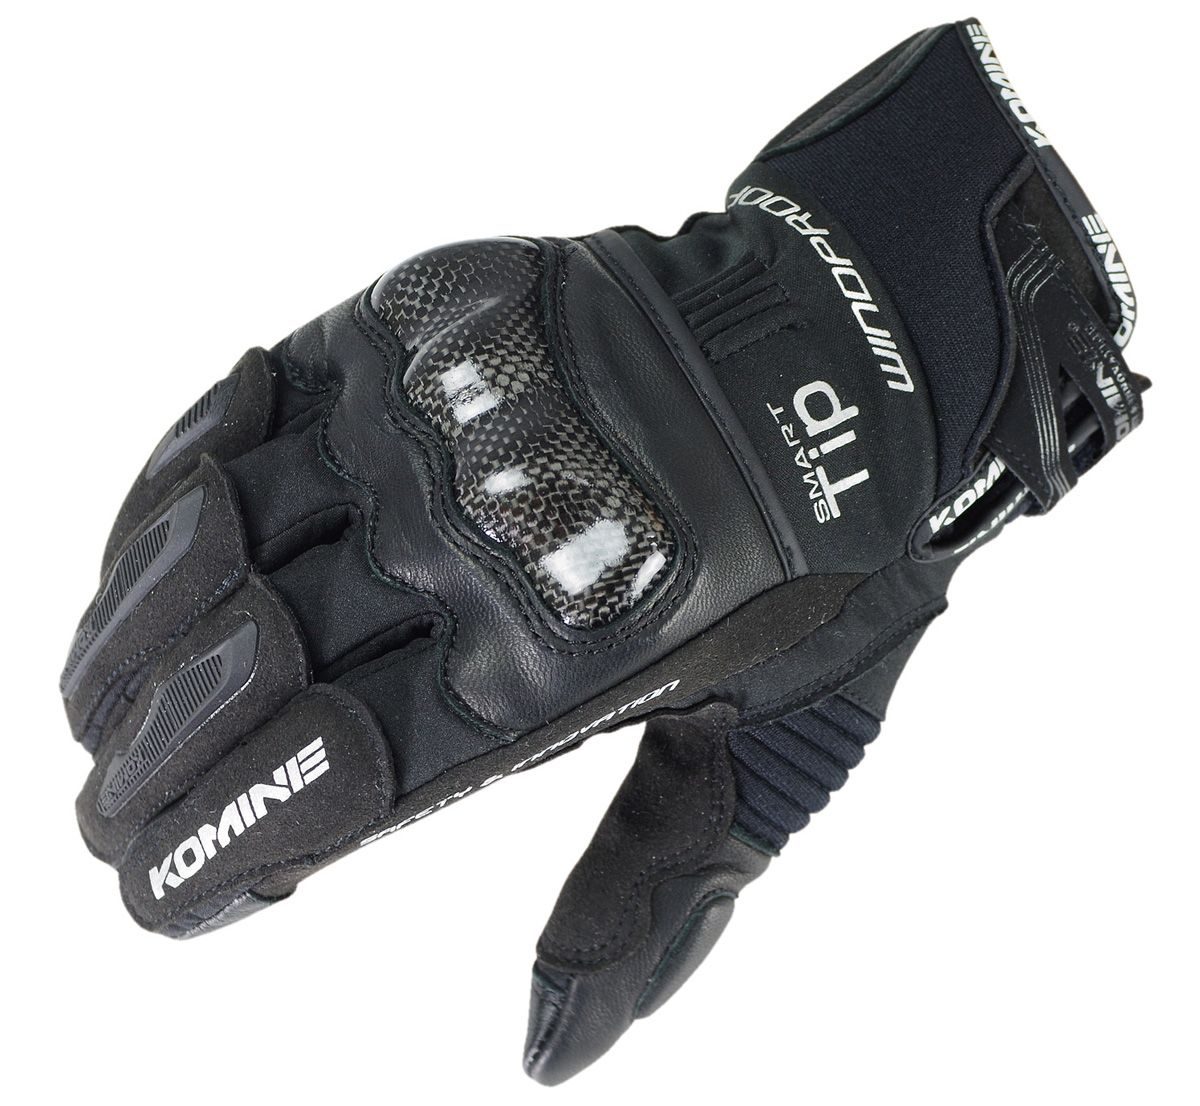 KOMINE GK-821 Carbon Protect Windproof Glove